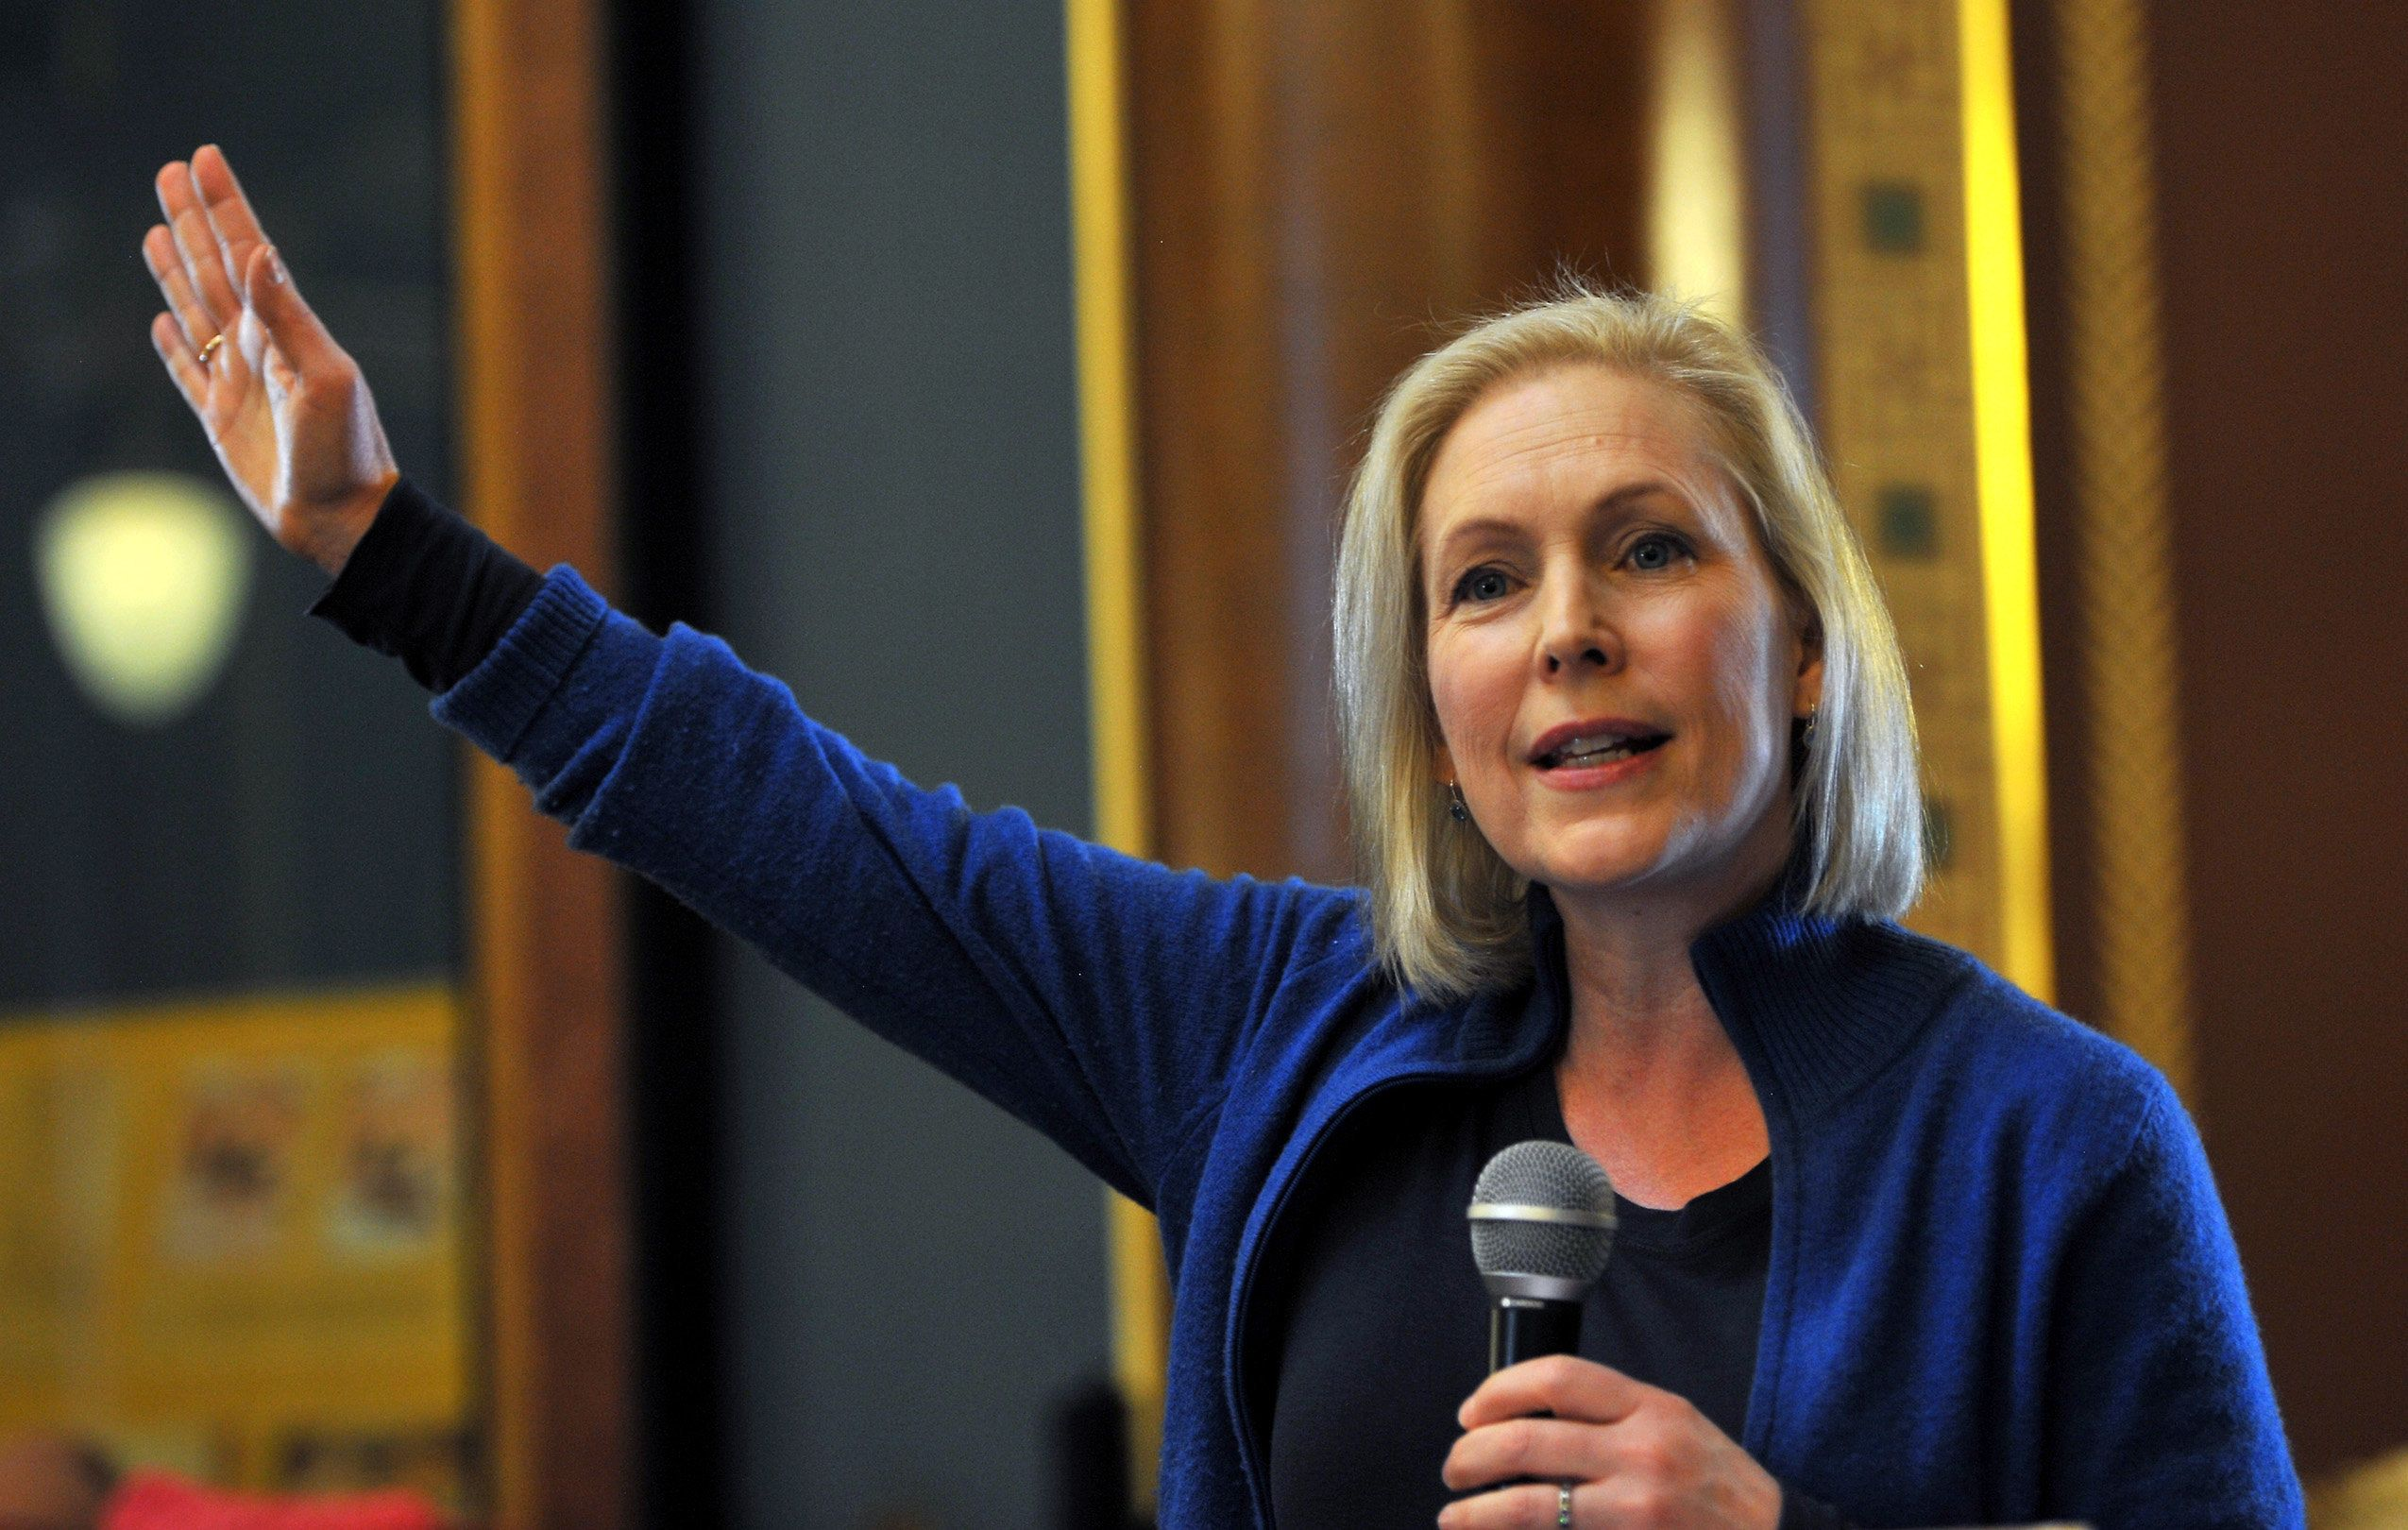 Sen. Kirsten Gillibrand (D-N.Y.) speaks at the Iowa Women's March on Saturday in Des Moines. The speech was part of her first